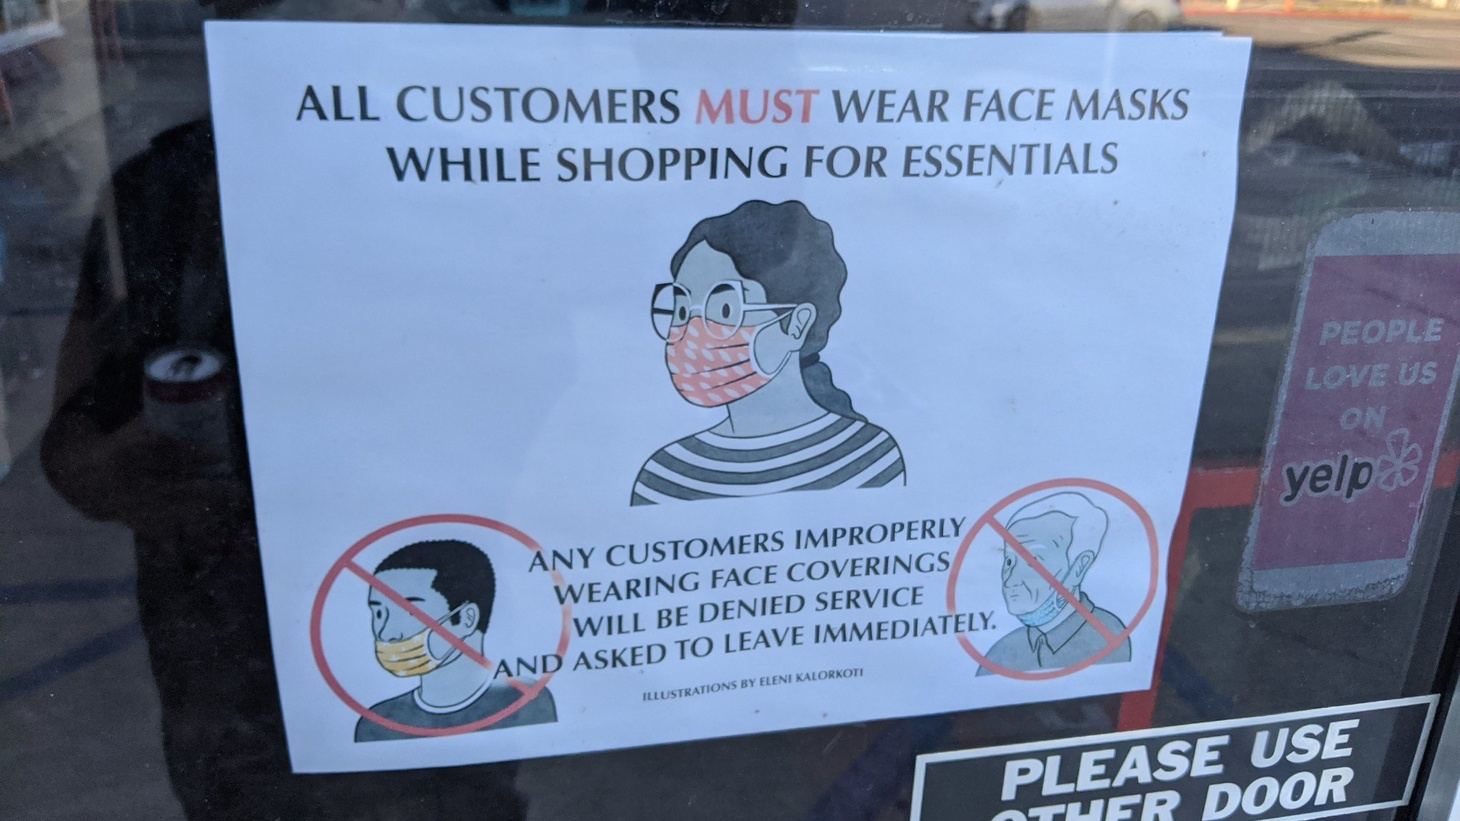 """A store in Burbank, California displays a sign that says, """"All customers must wear face masks while shopping for essentials. Any customers improperly wearing face coverings will be denied service and asked to leave immediately."""""""